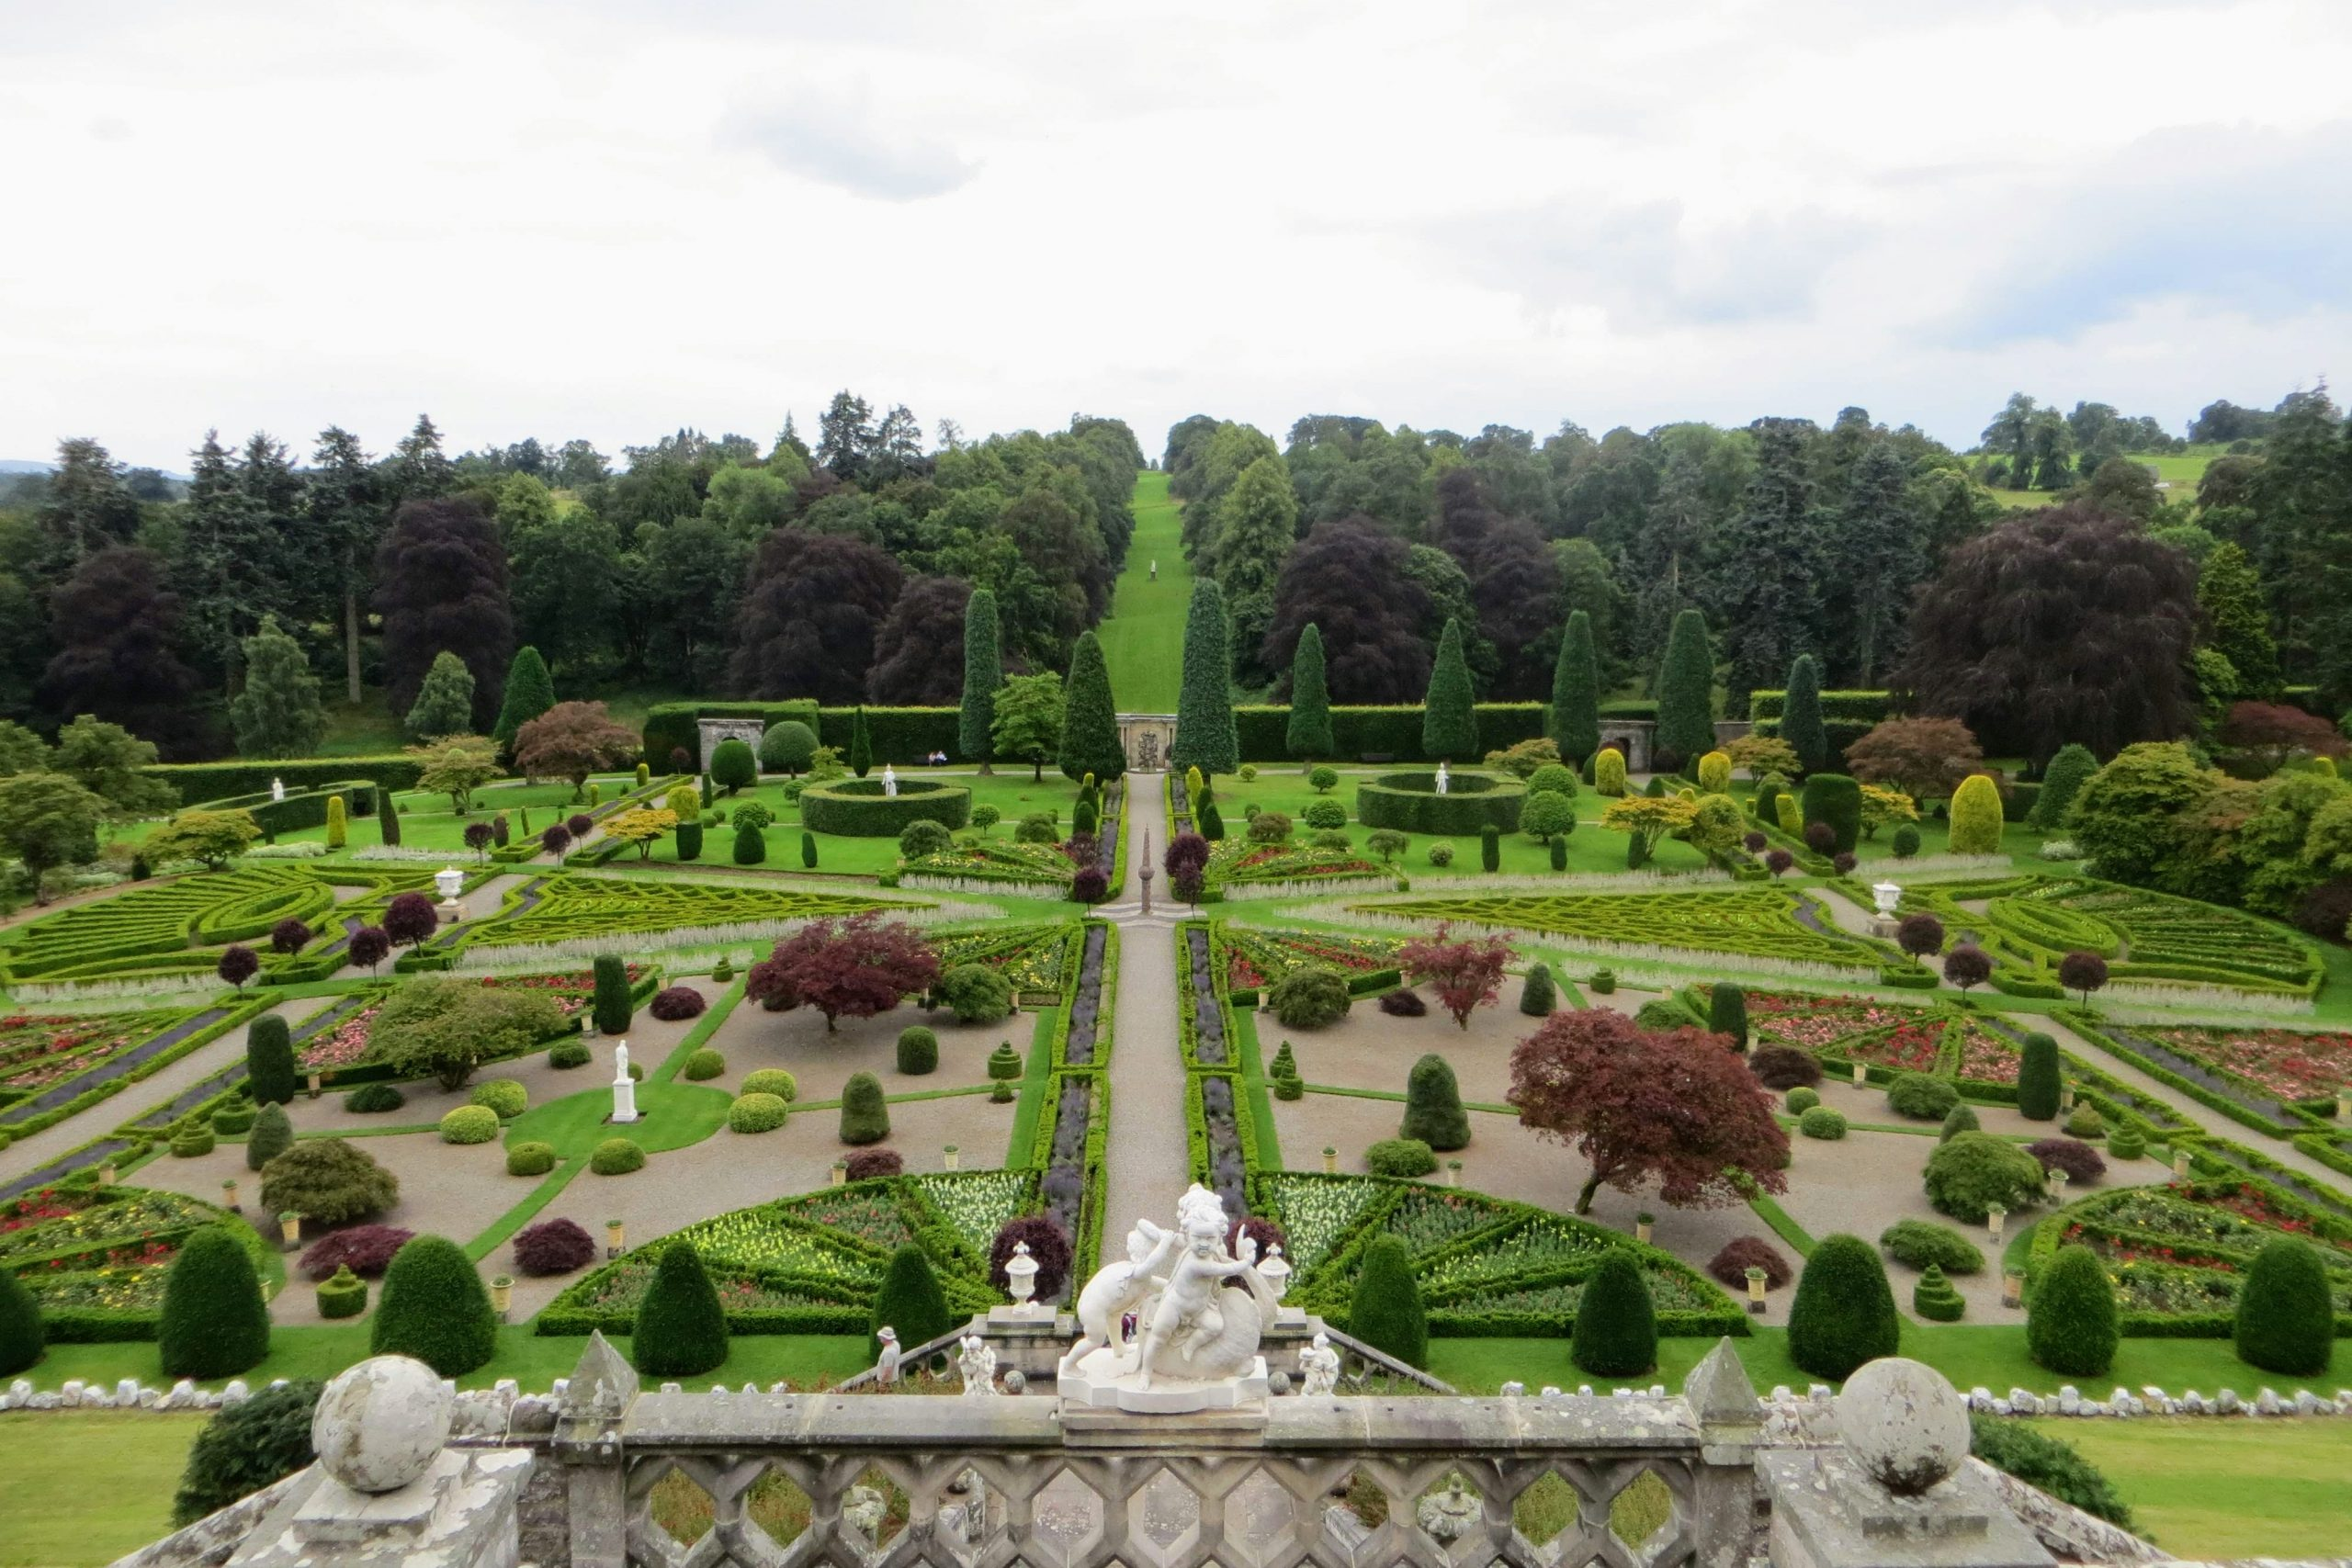 Tour Privati Scozia - Drummond Castle Gardens